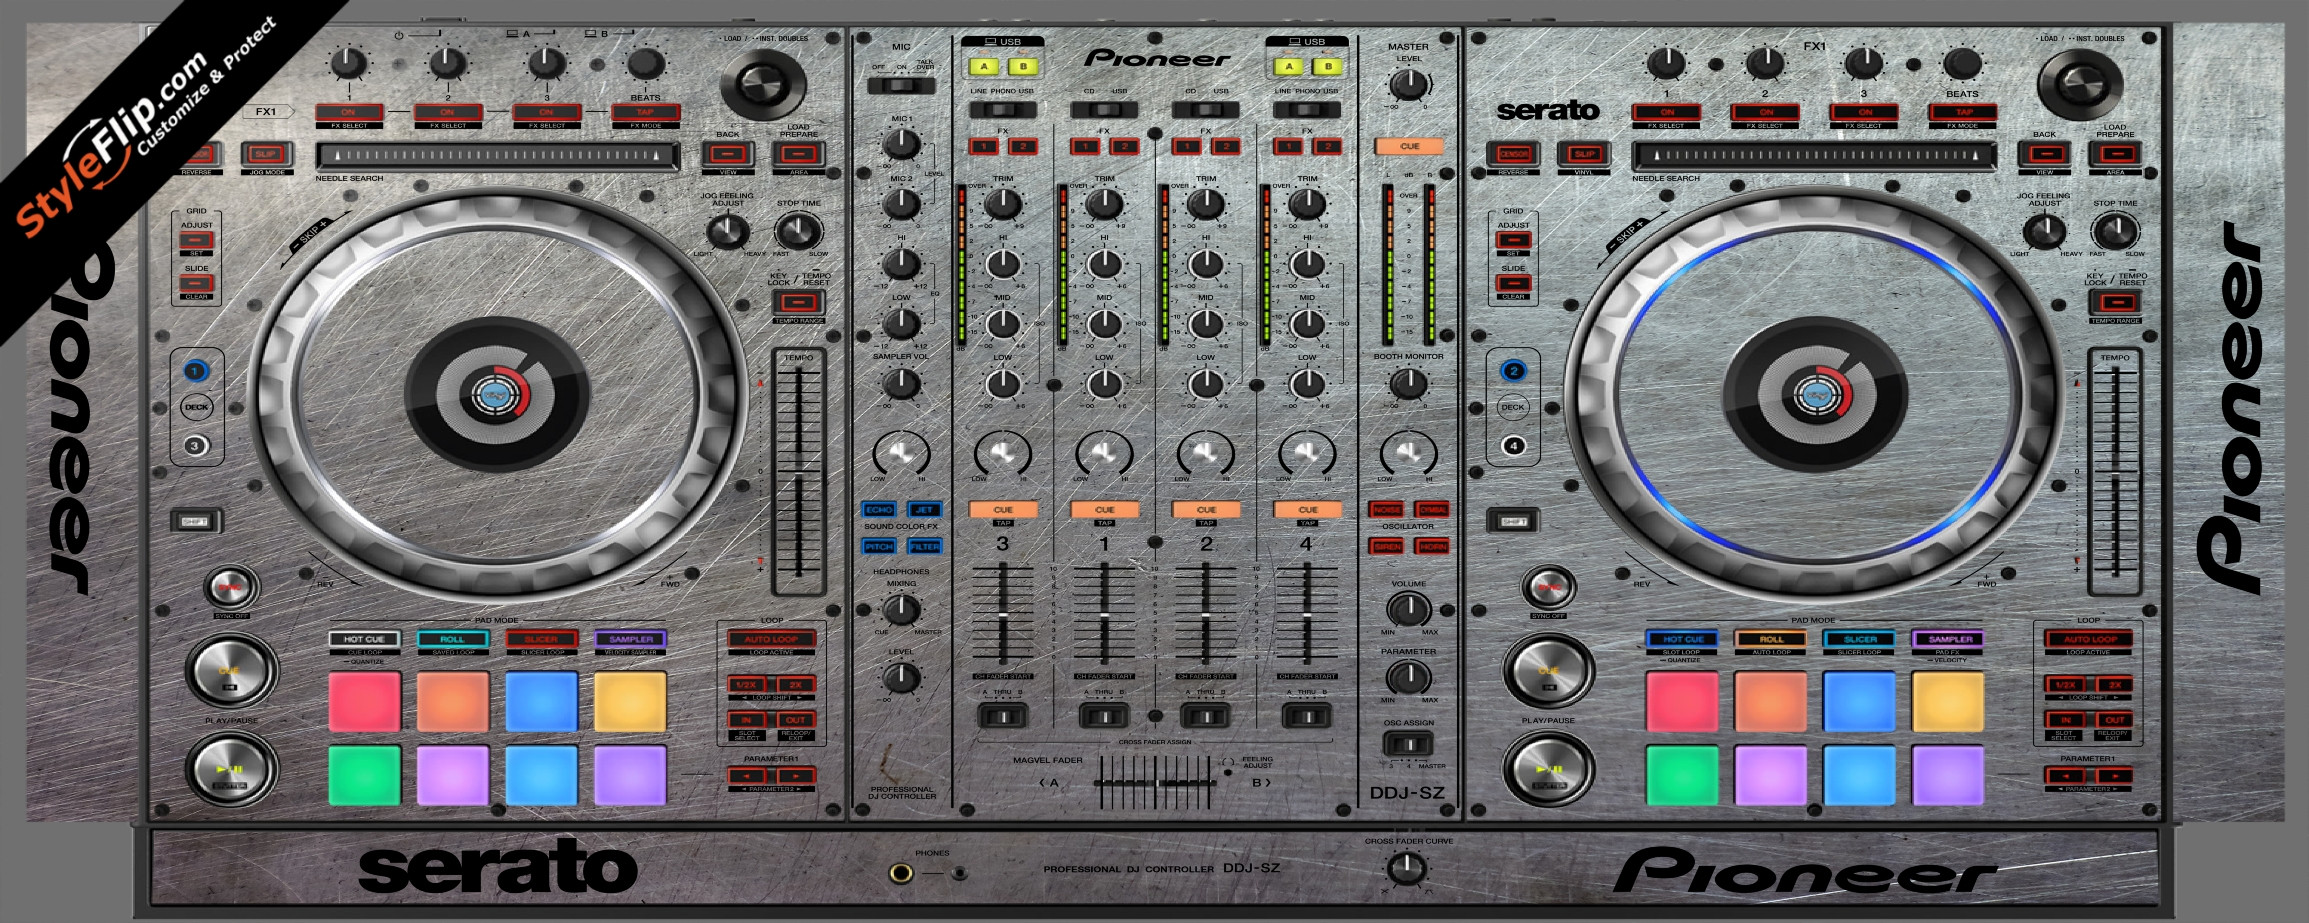 Steel Your Faceplate Pioneer DDJ-SZ